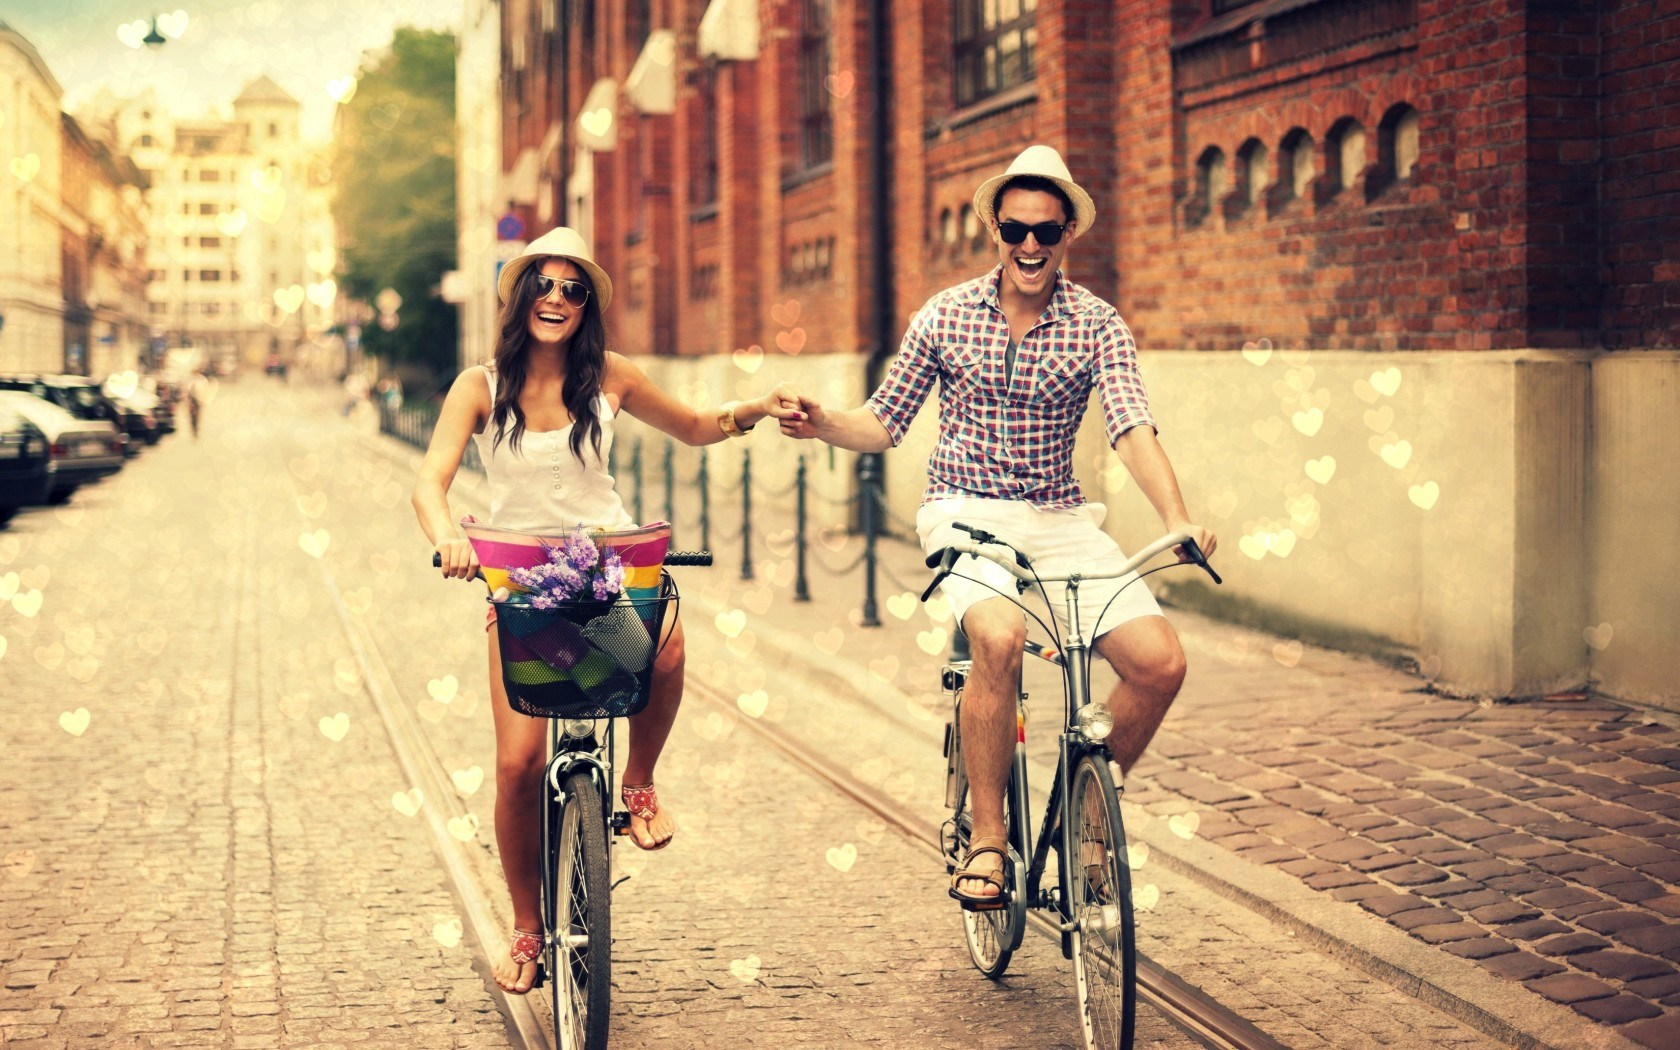 Mood Boy Girl Bicycles Love Hearts HD Wallpaper